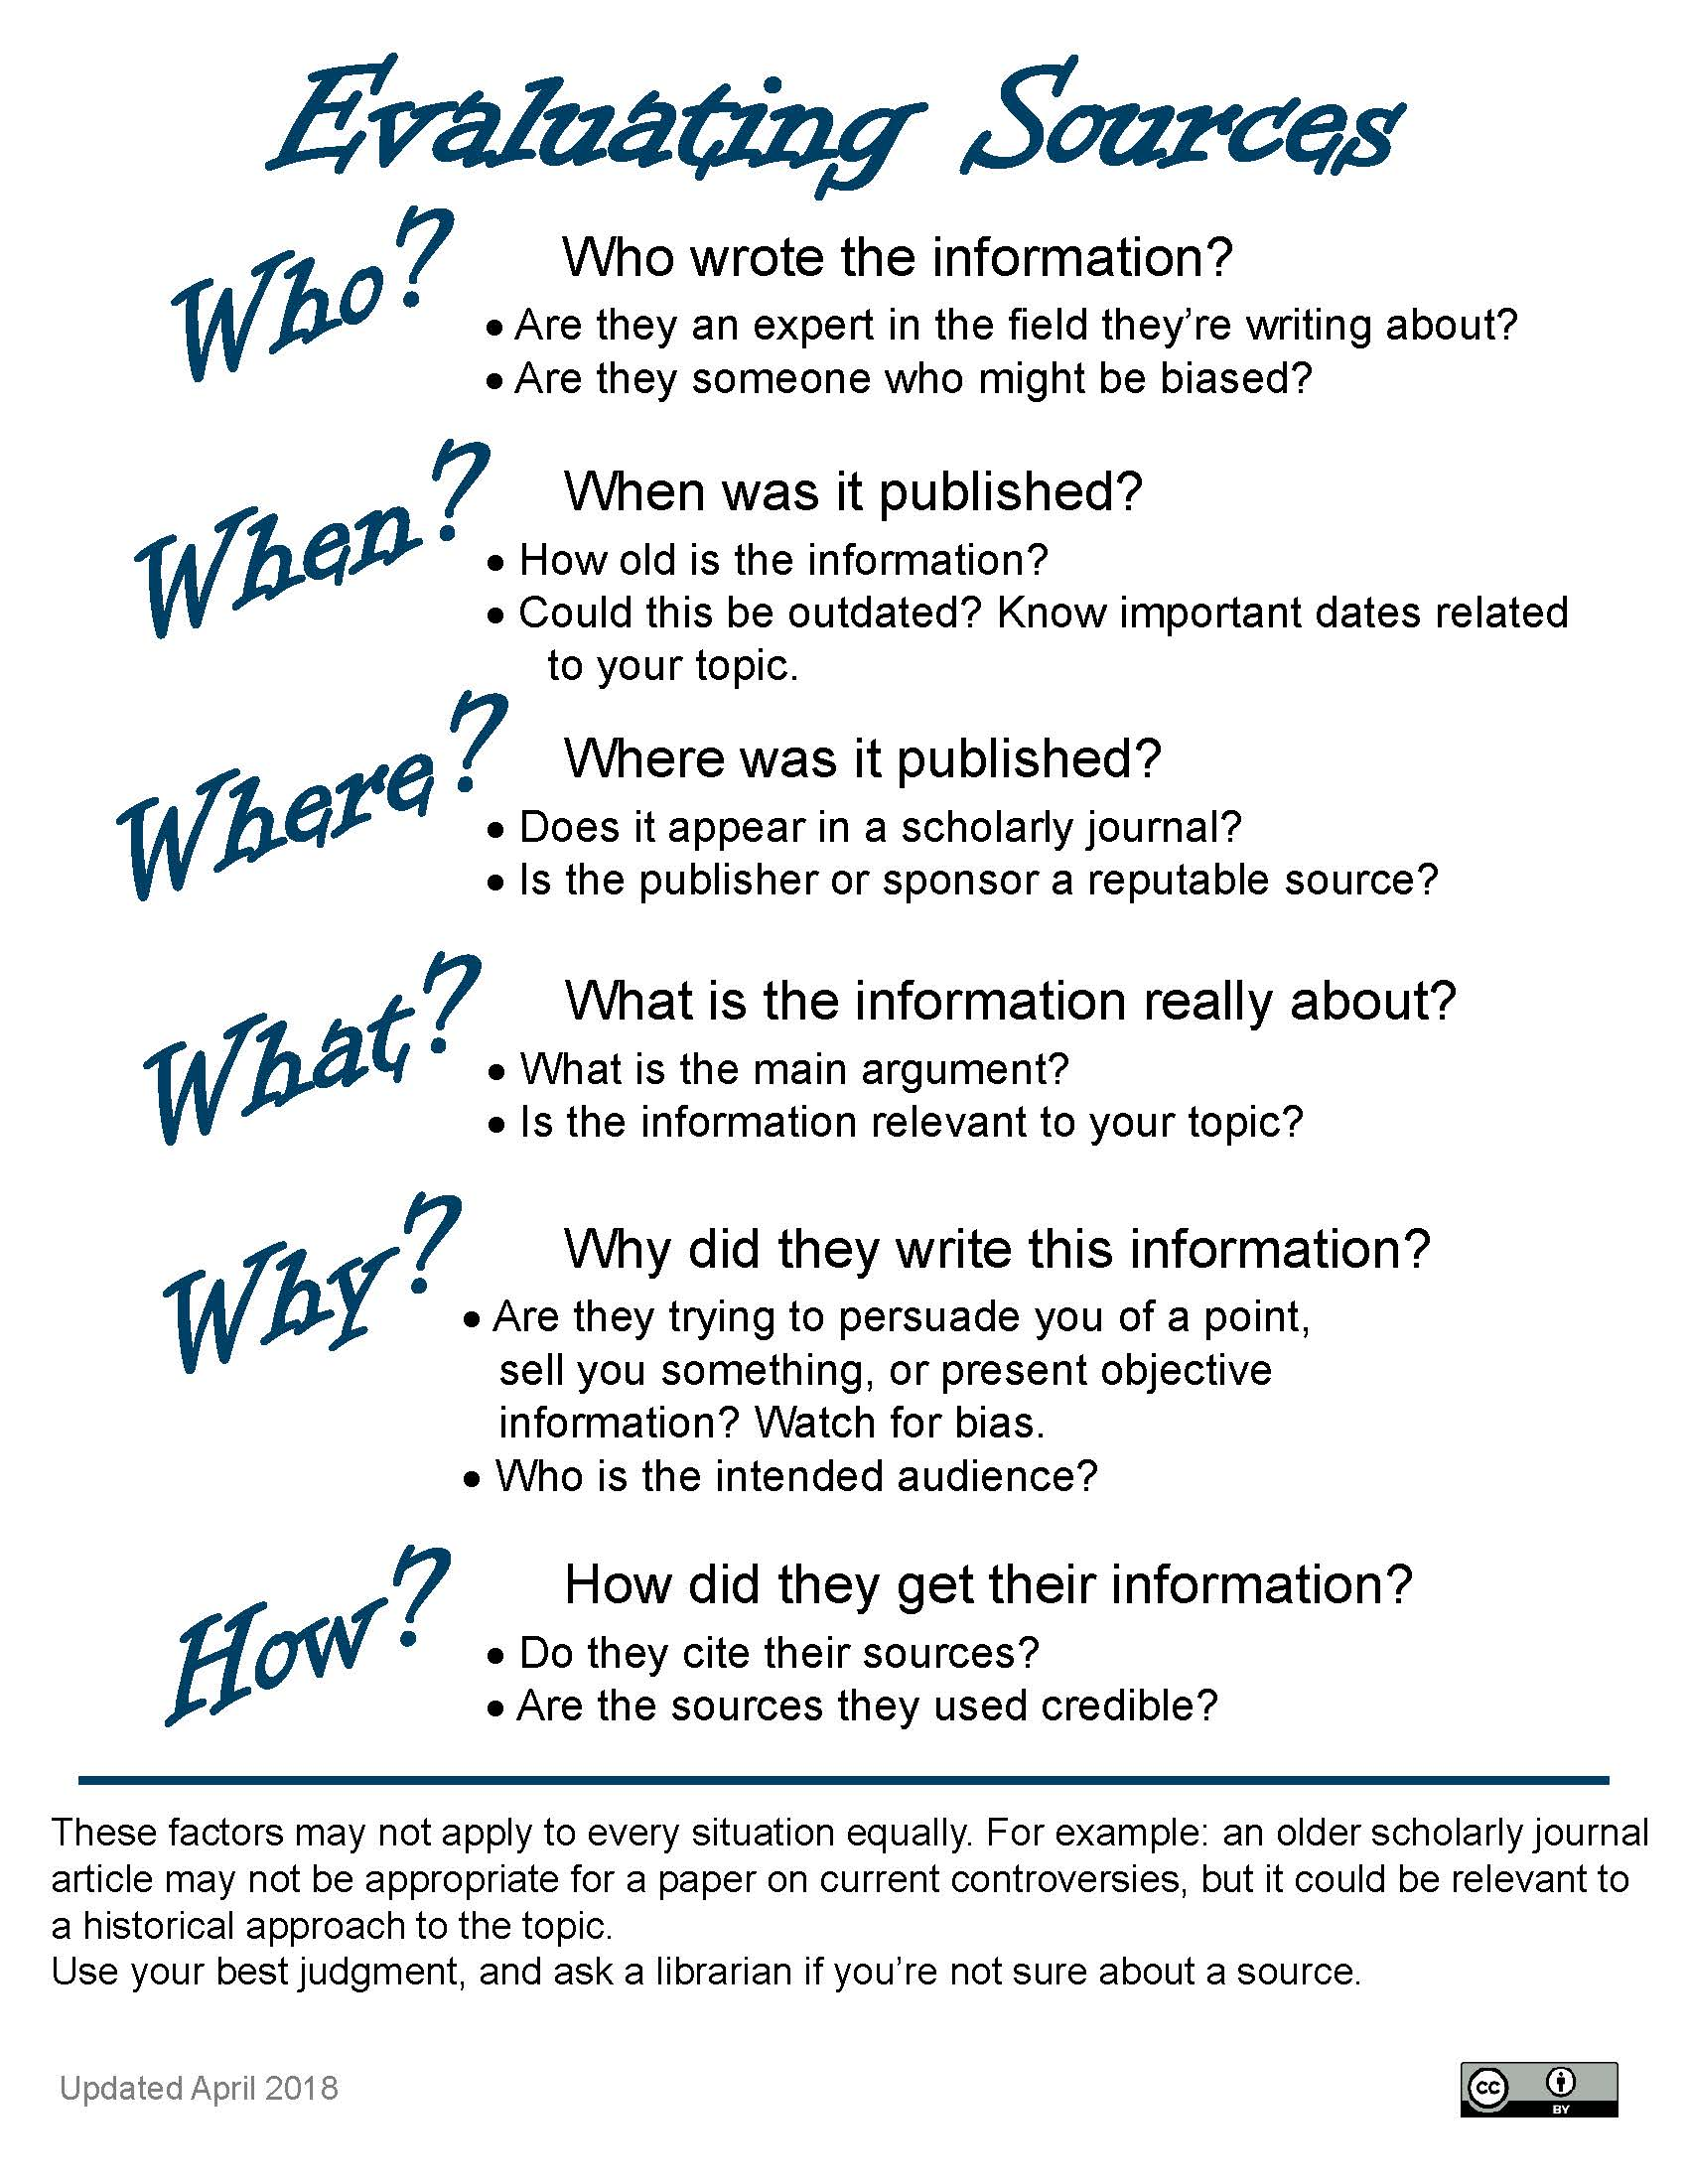 Image: Evaluating Sources - Text version of this information is below the graphic